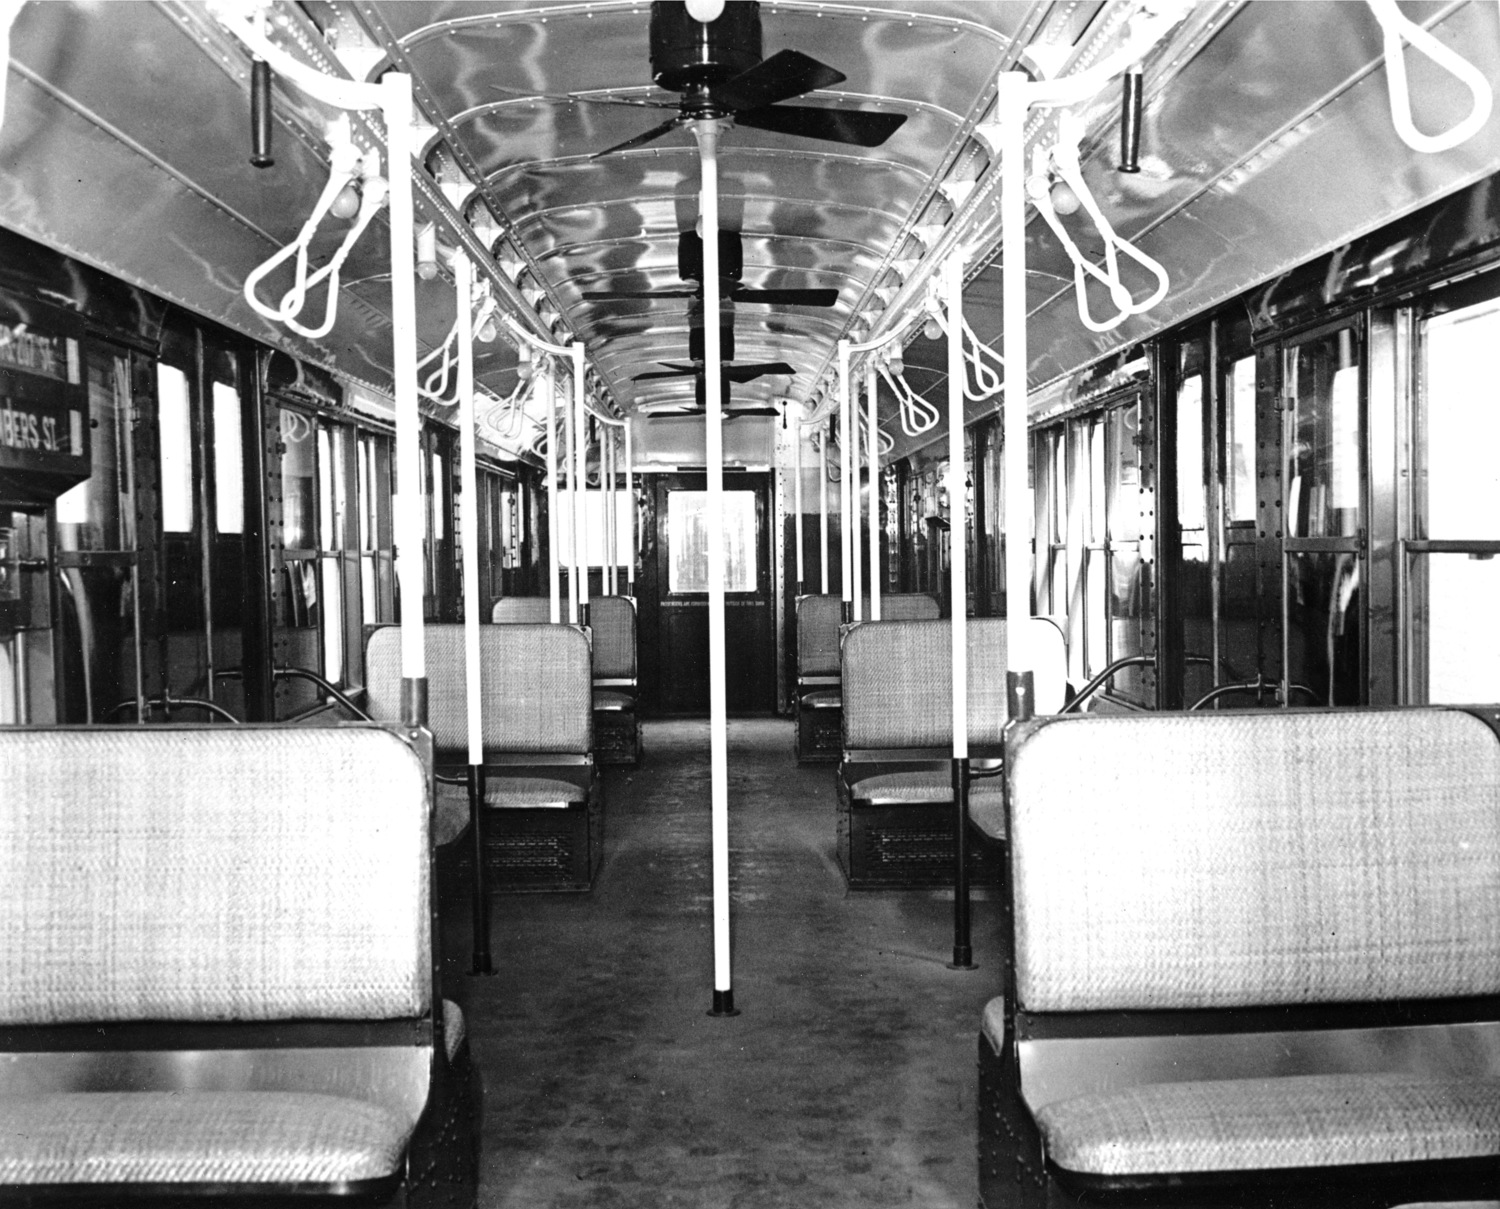 This is an interior view of the new 8th Avenue subway car in New York City, May 1937.